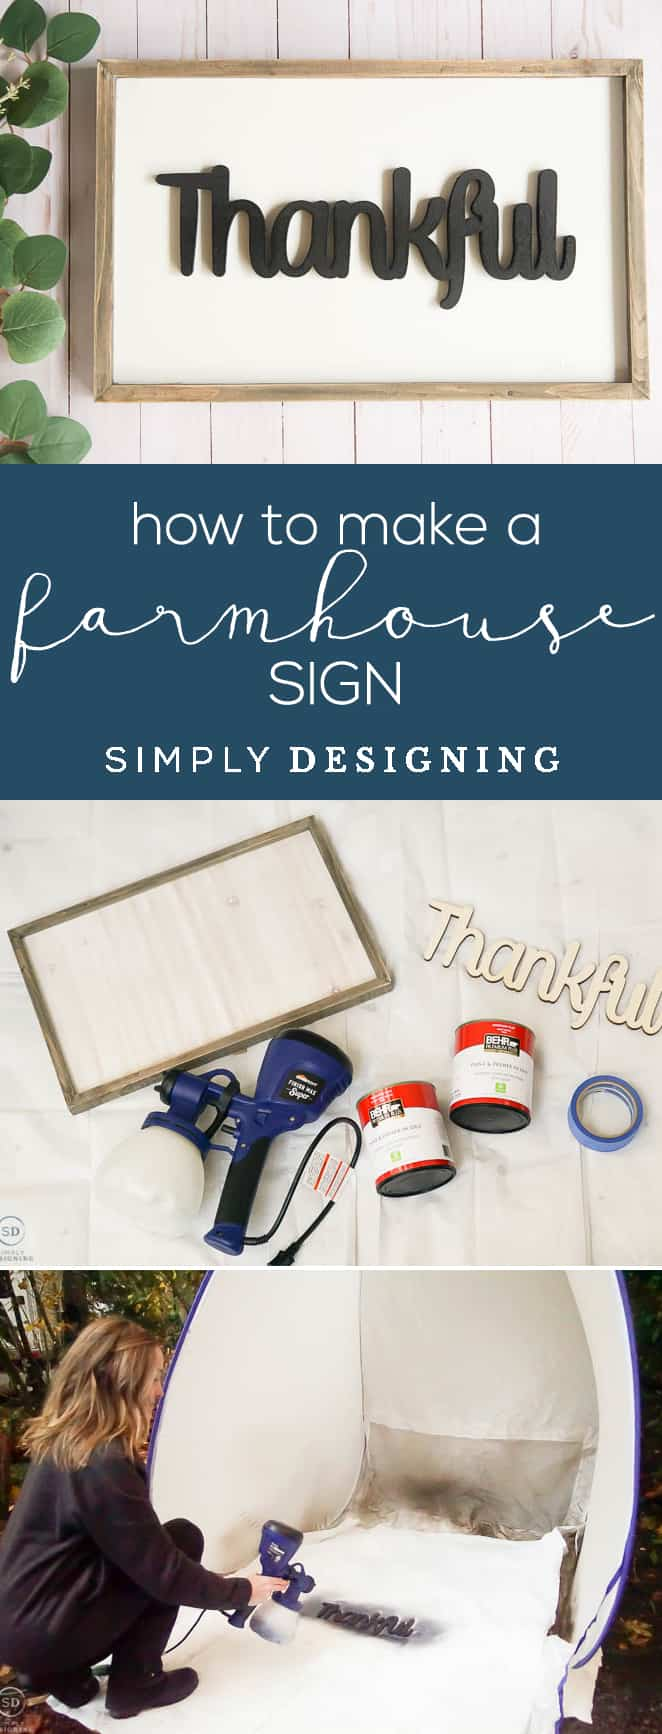 Save your time and money and make your own farmhouse sign instead of buying it with these tips for how to make a farmhouse sign